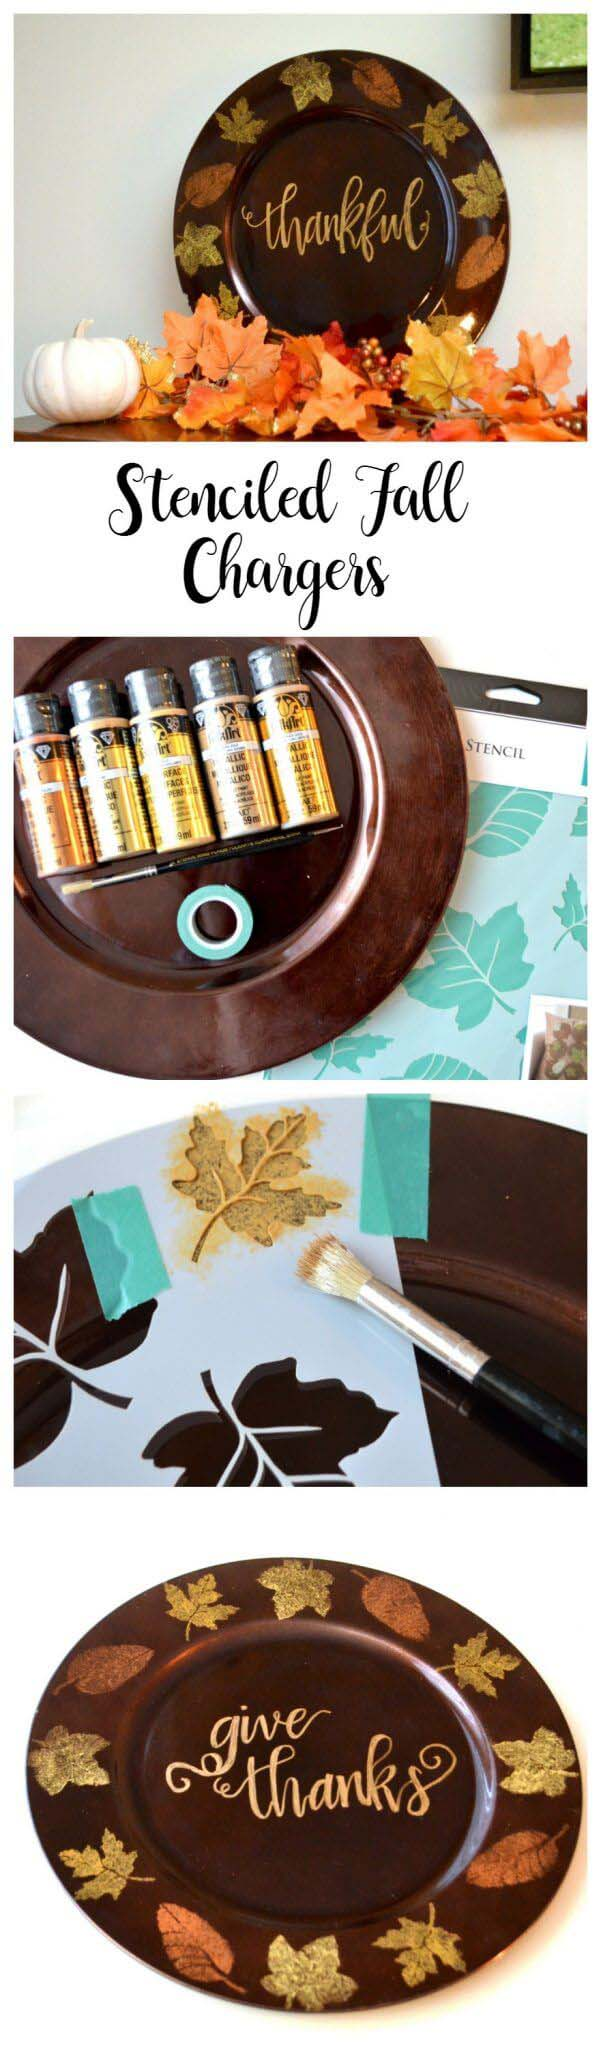 21. Paint Your Own Thanksgiving Dinner Chargers #fall #leaf #crafts #decorhomeideas